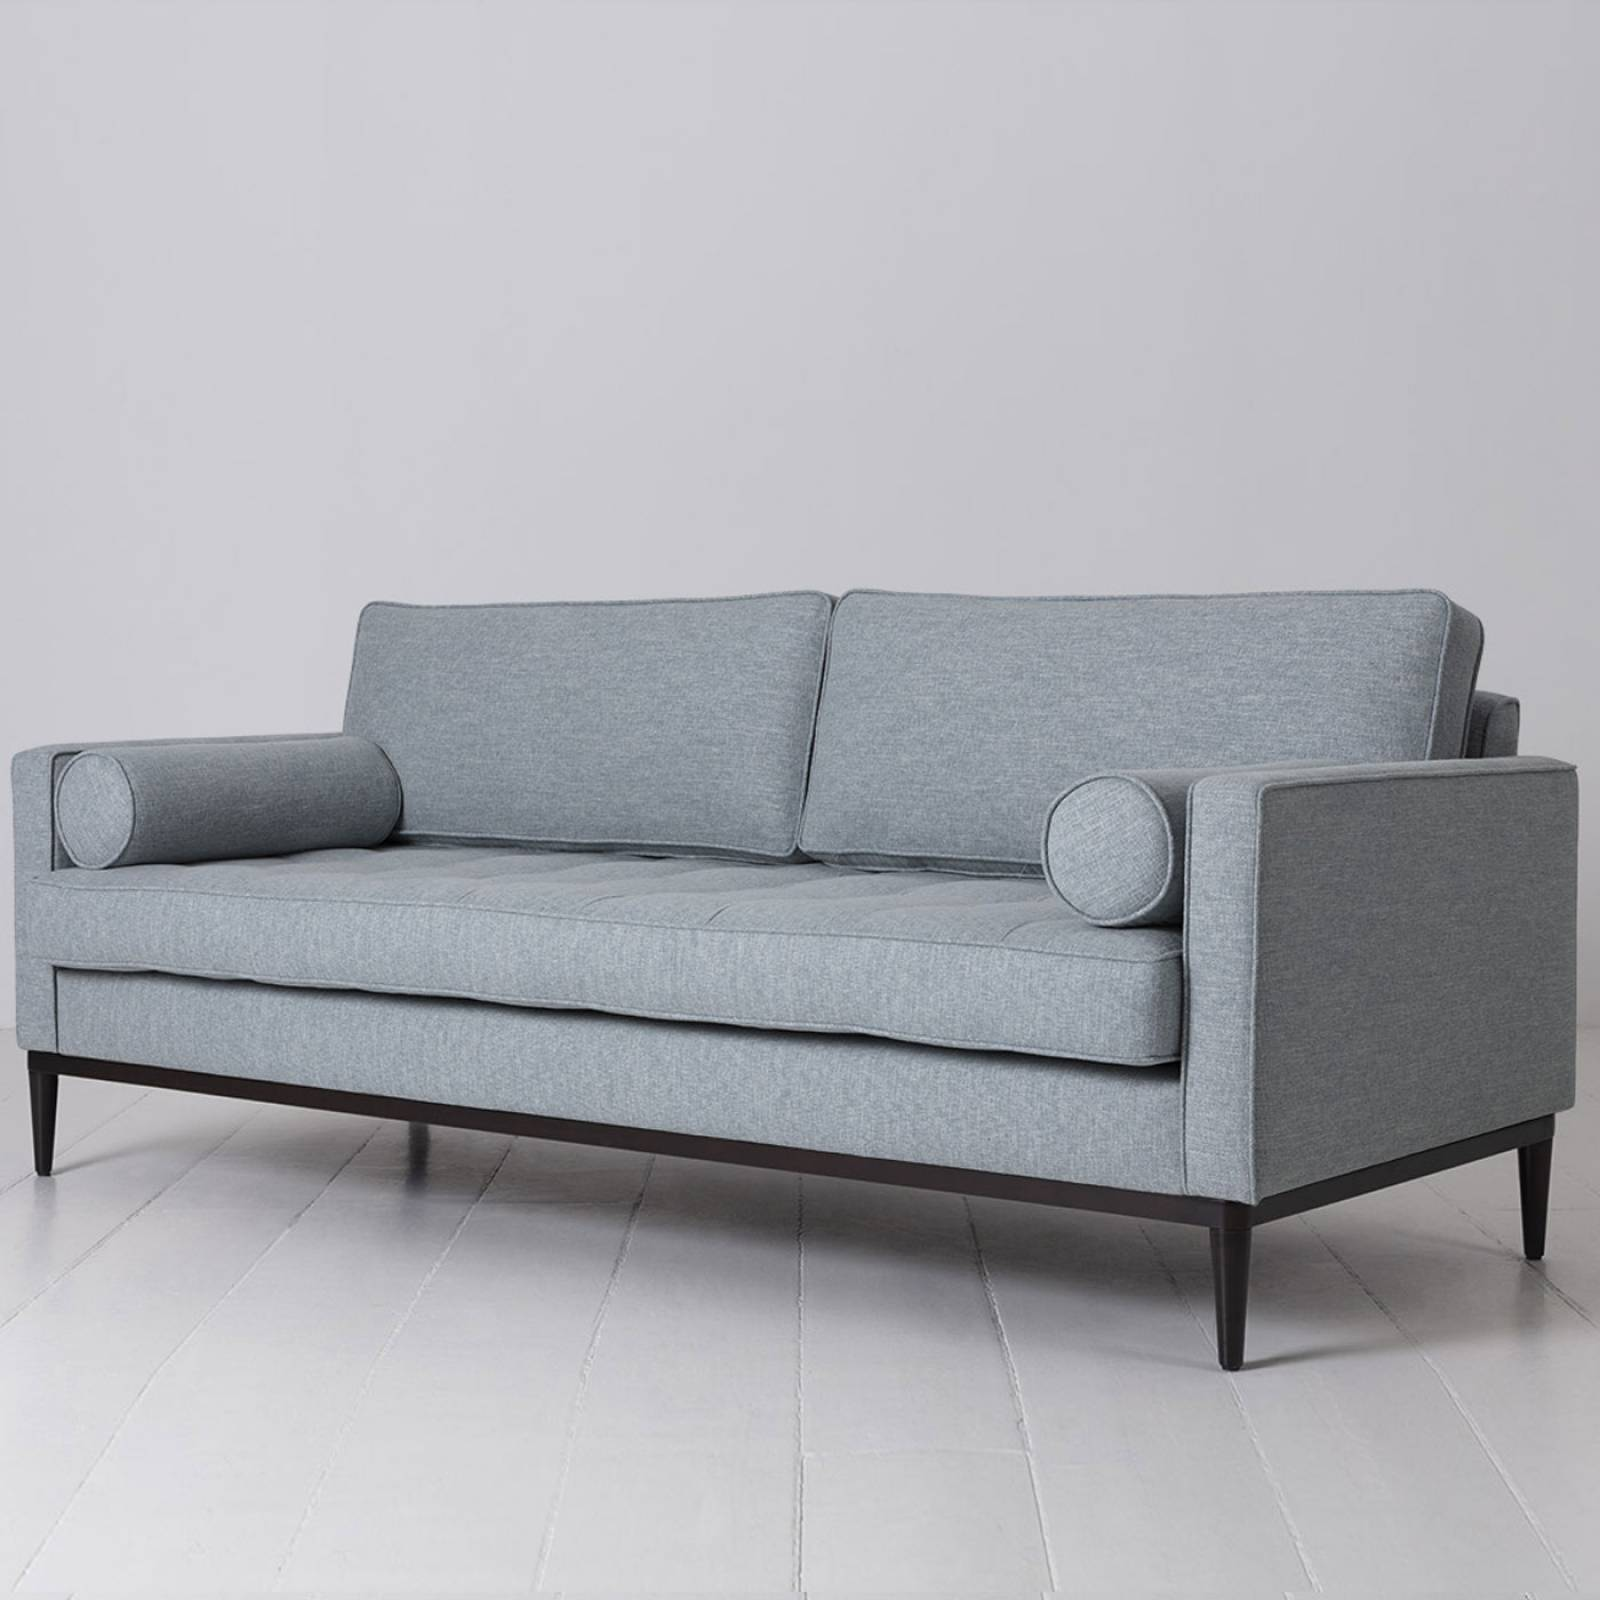 Swyft - Model 02 Linen 3 Seater Sofa - Seaglass thumbnails